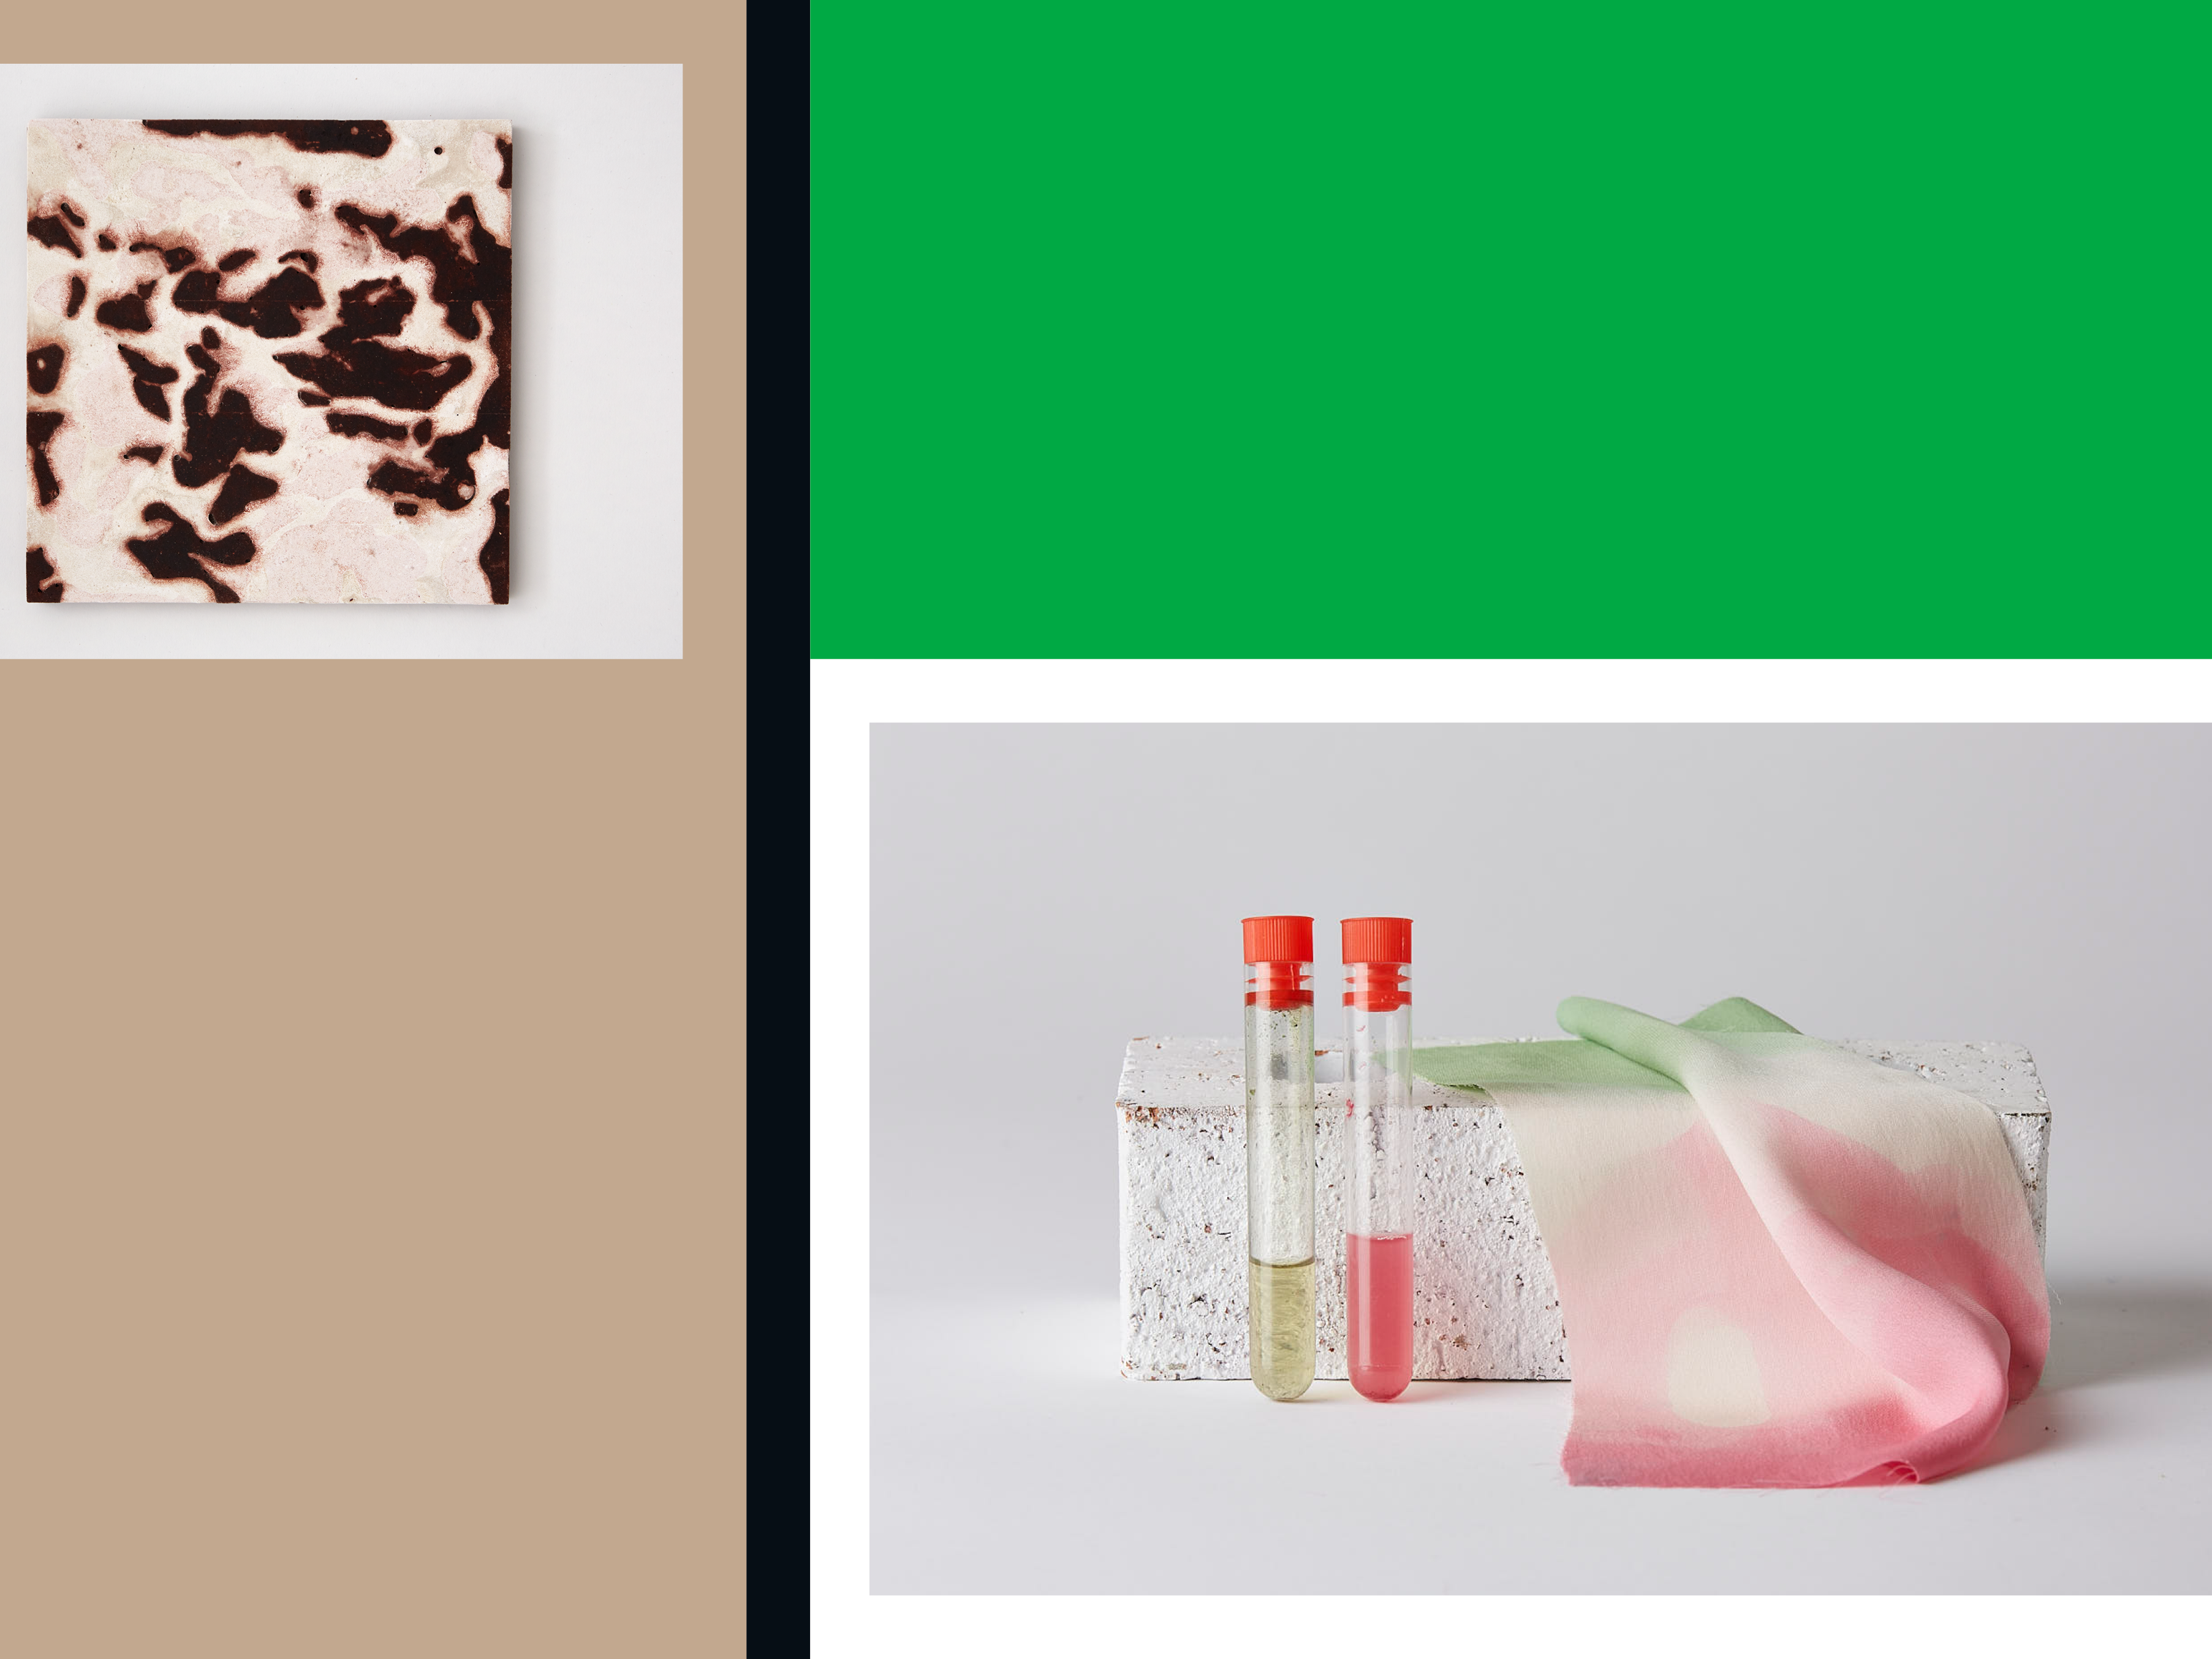 Composite image with green and brown blocks and two images of work (one brown tile and one red material with glass vials)